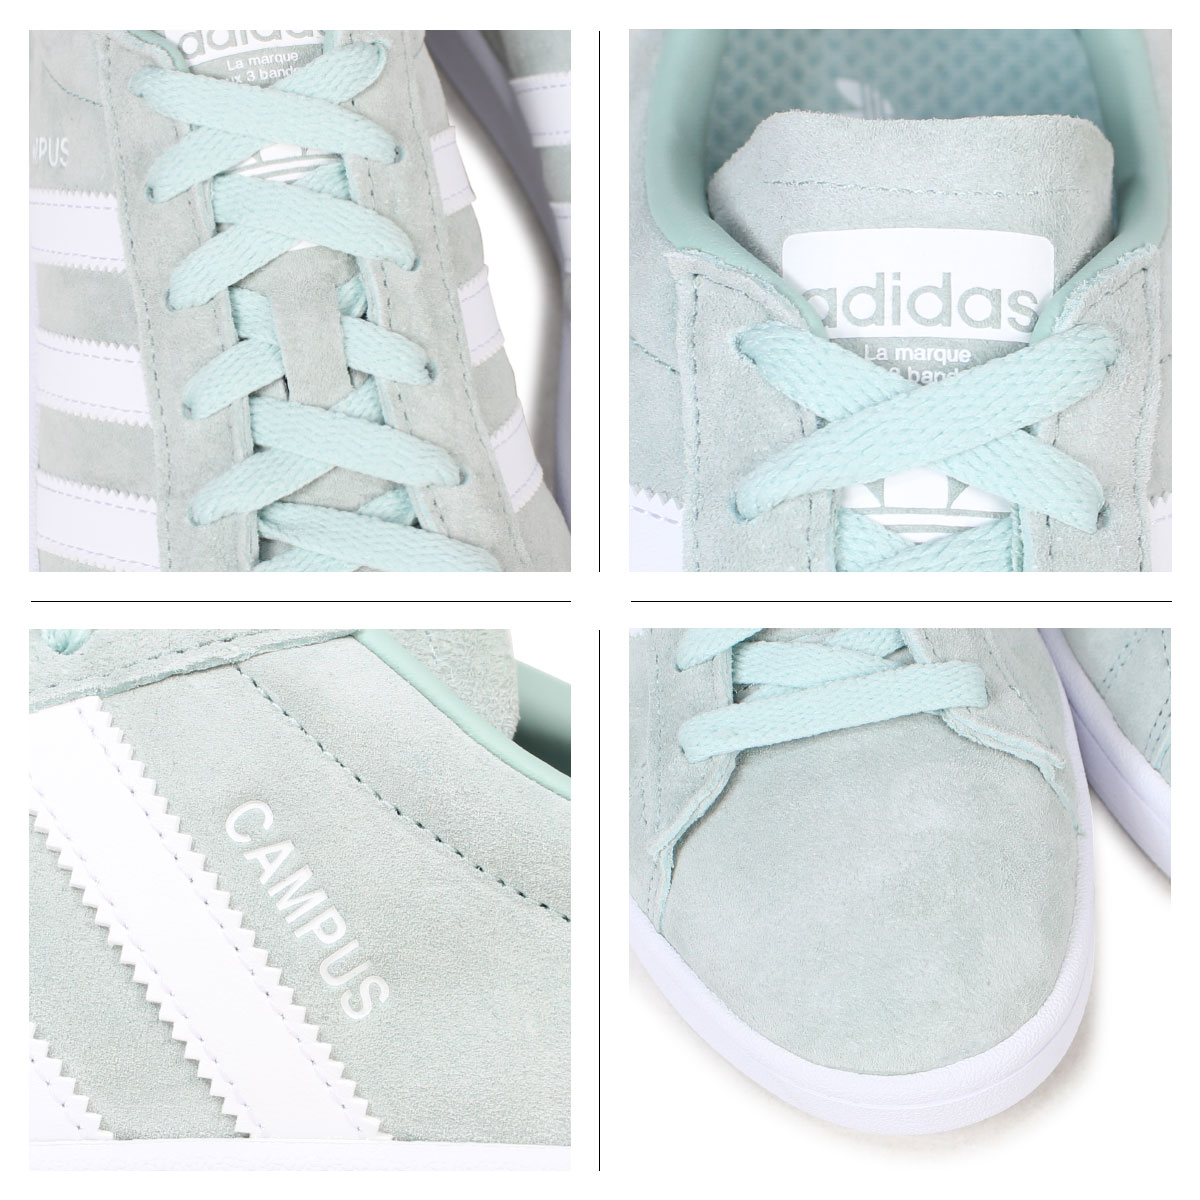 uk availability 0c3d1 a60c4 adidas originals CAMPUS Adidas campus sneakers men gap Dis DB0982 shoes  green load planned Shinnyu load in reservation product 1226 containing